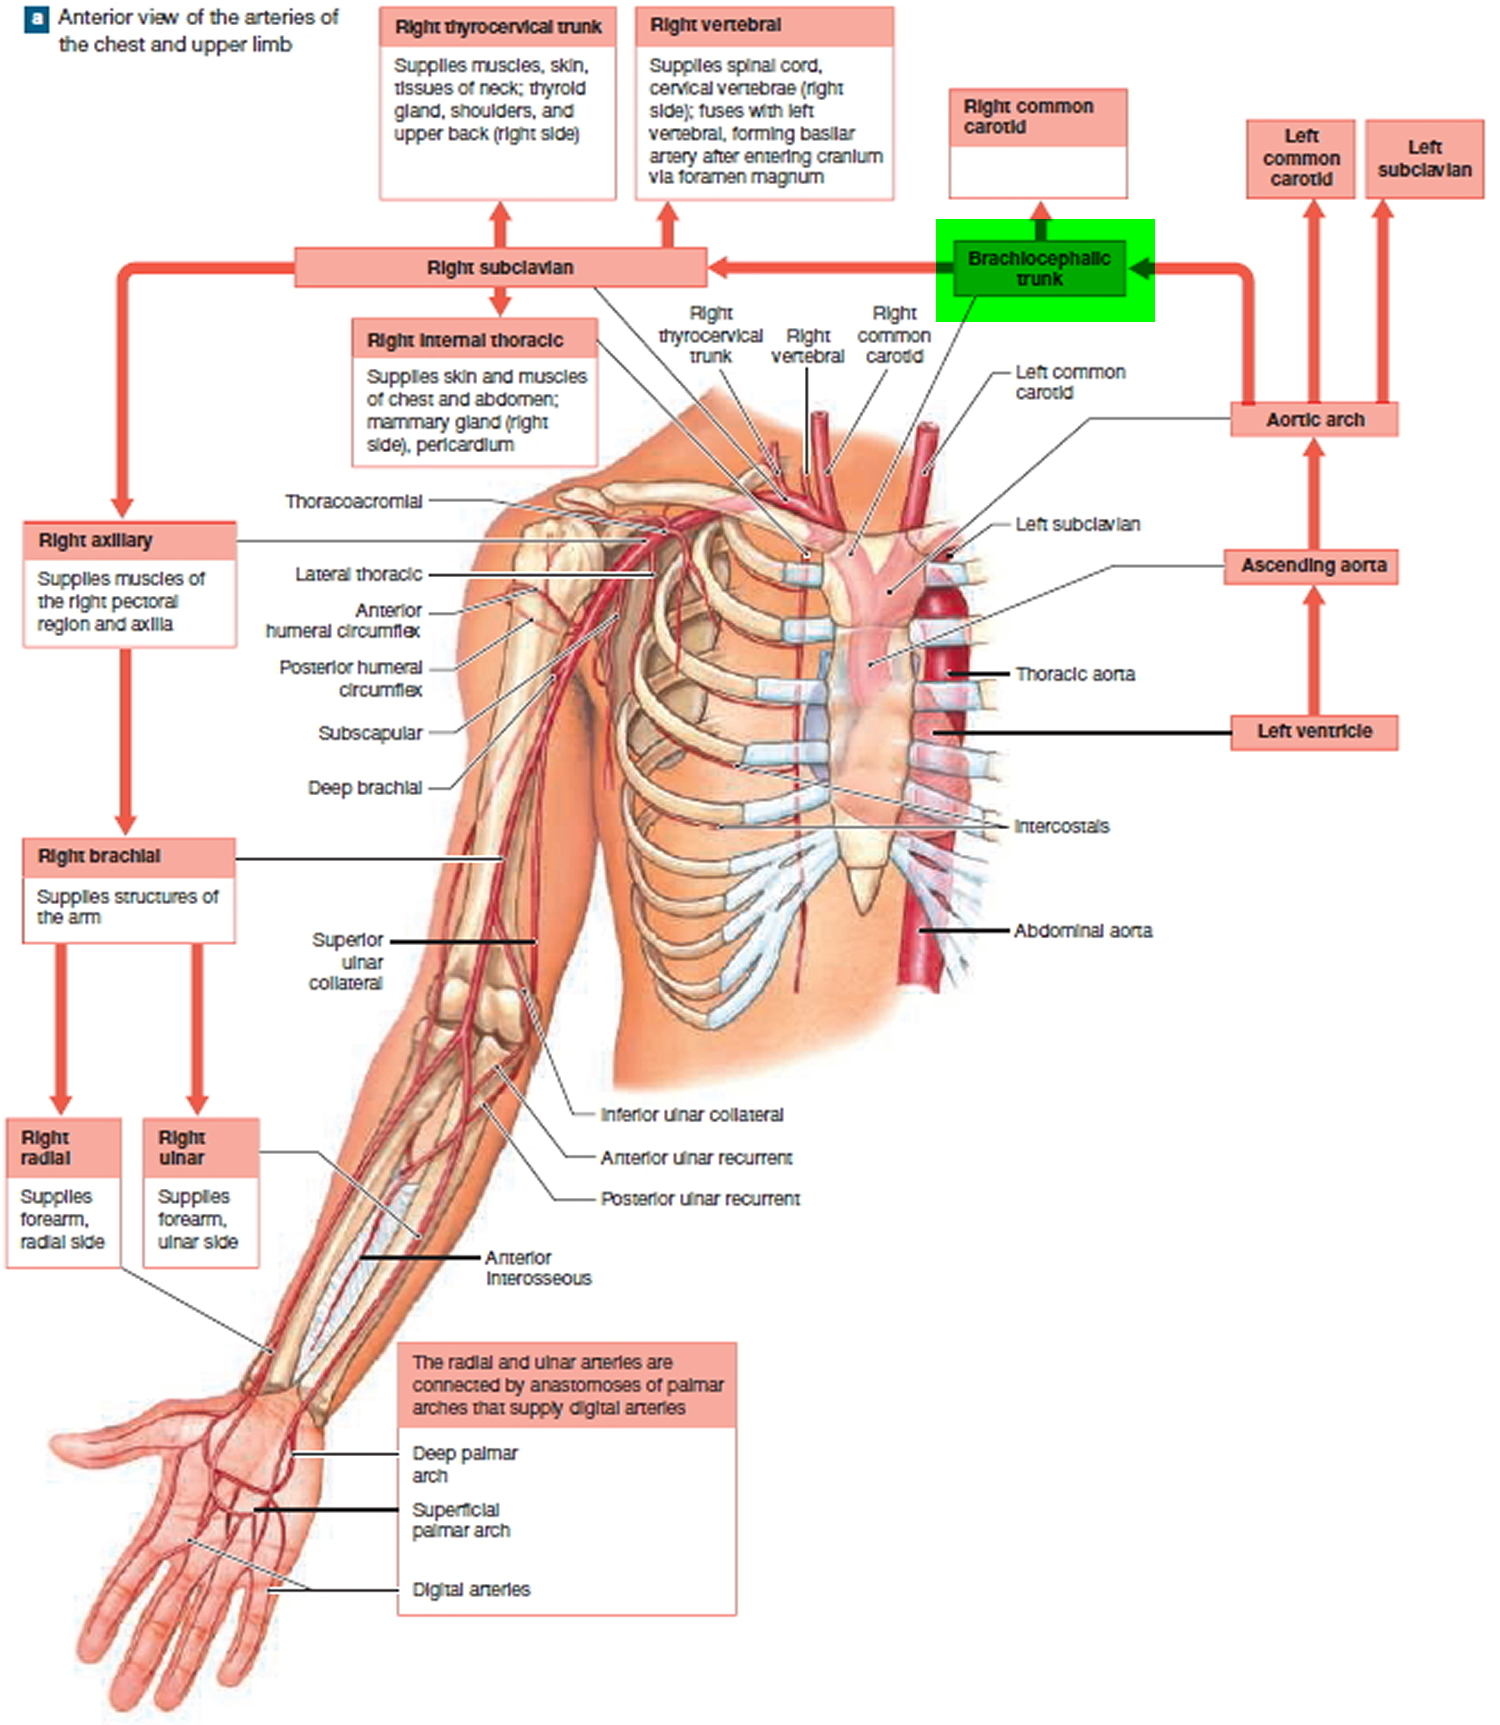 Brachiocephalic Artery and its branches - Function and Blood Supply